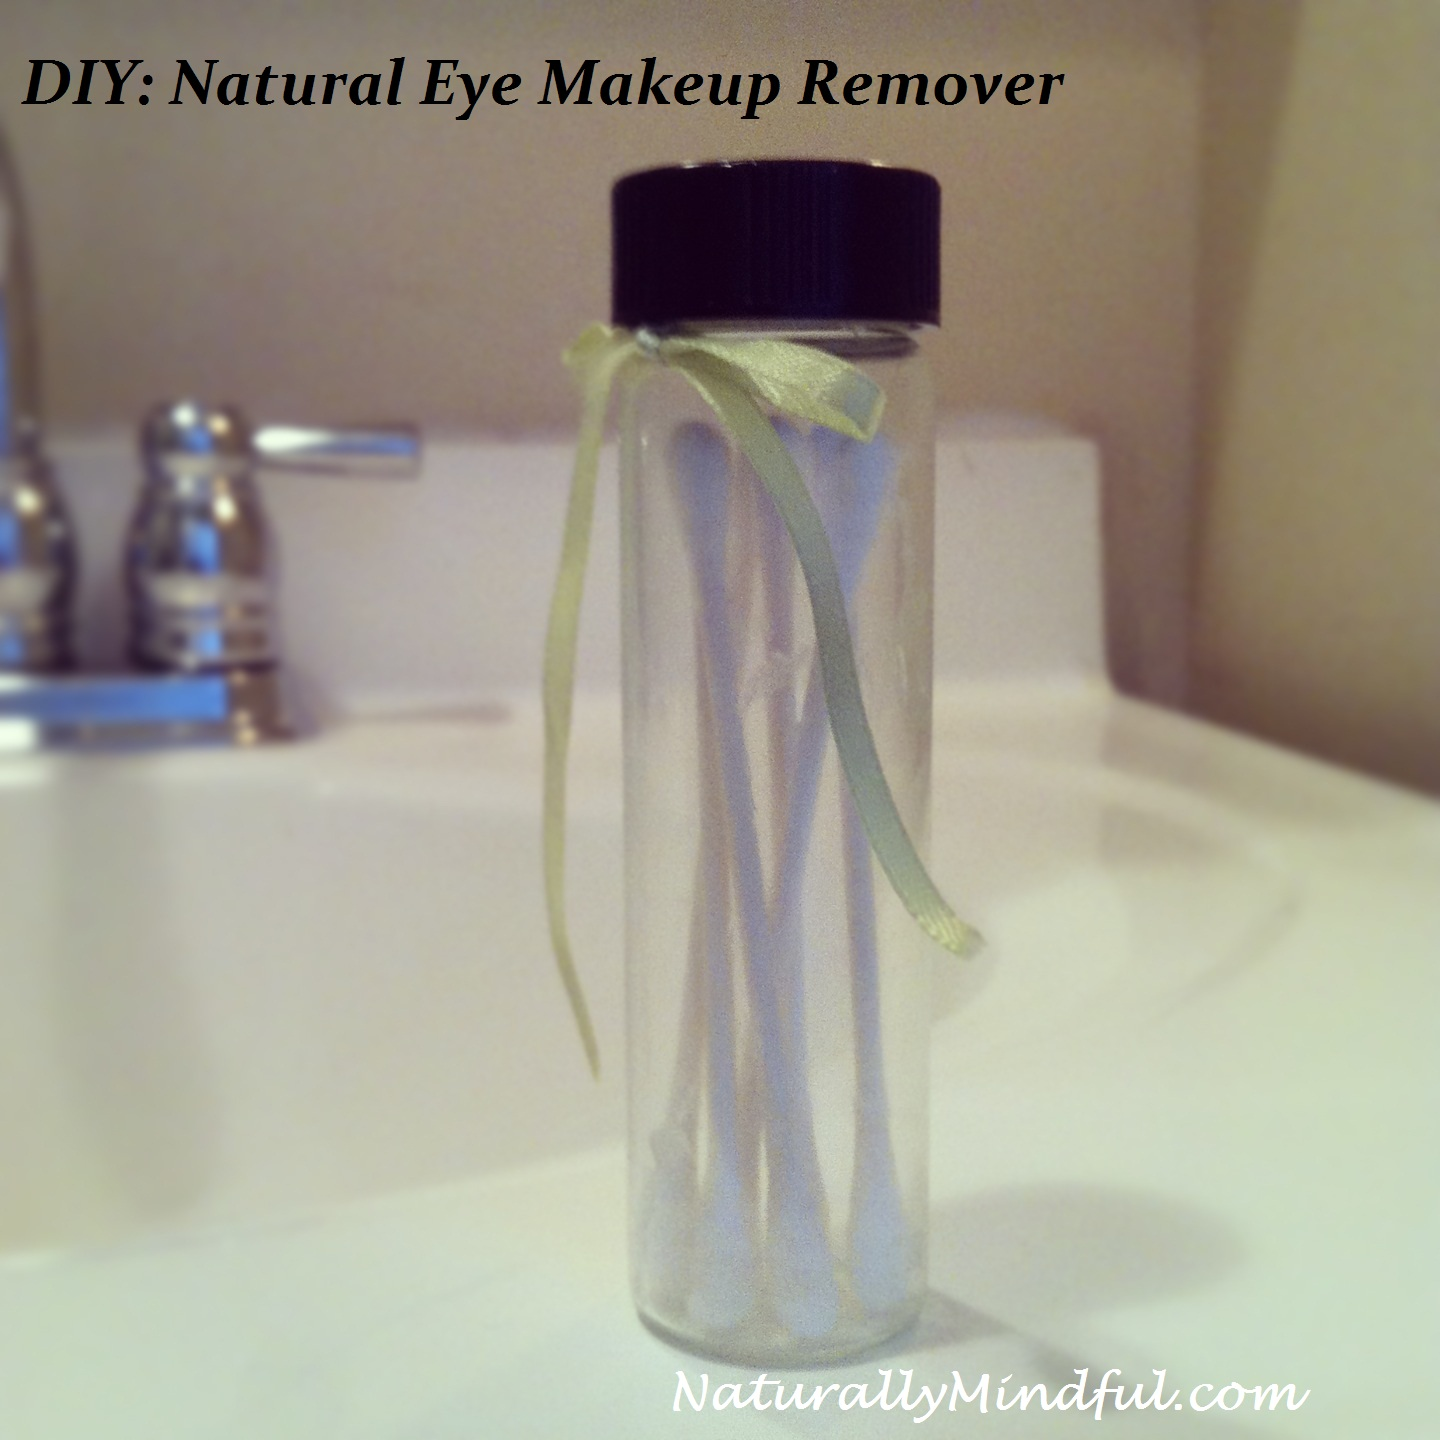 at remover makeup Remover natural  Natural Makeup Naturally Mindful Eye  home  DIY: